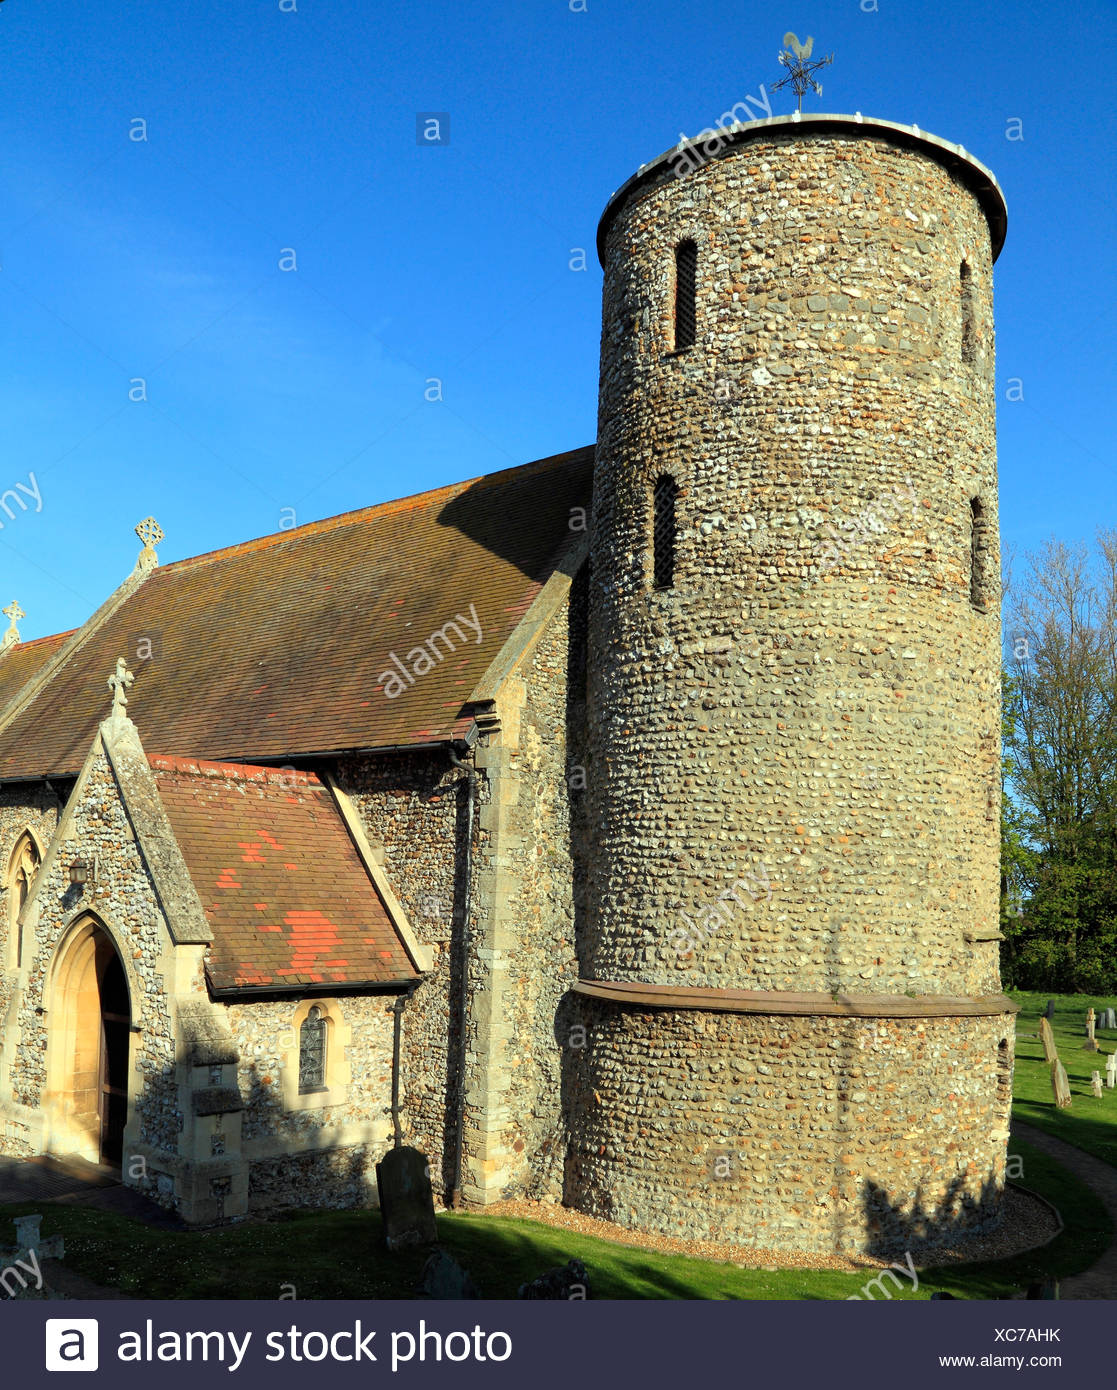 11th Century English Home - burnham-deepdale-norfolk-anglo-saxon-round-tower-11th-century-england-uk-english-early-medieval-church-towers-XC7AHK_Most Inspiring 11th Century English Home - burnham-deepdale-norfolk-anglo-saxon-round-tower-11th-century-england-uk-english-early-medieval-church-towers-XC7AHK  Trends_51631.jpg